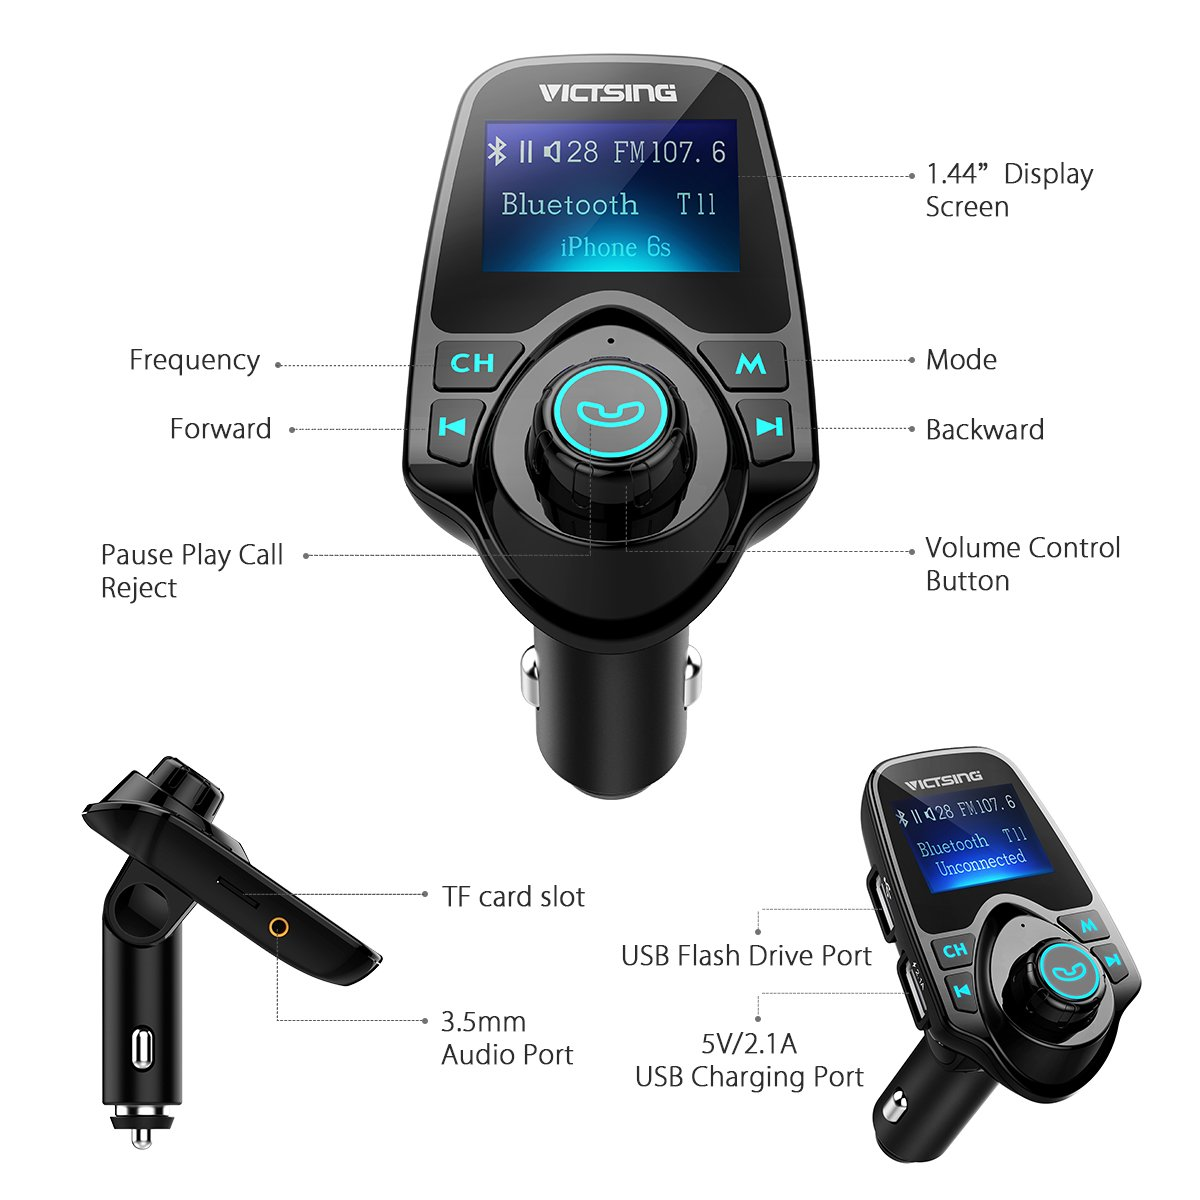 VicTsing Bluetooth FM Transmitter Radio Car Kit Adapter With 1.44 Inch Display 5V 2.1A USB Car Charger Support Micro SD Card and USB Flash Drive-Black by VicTsing (Image #3)